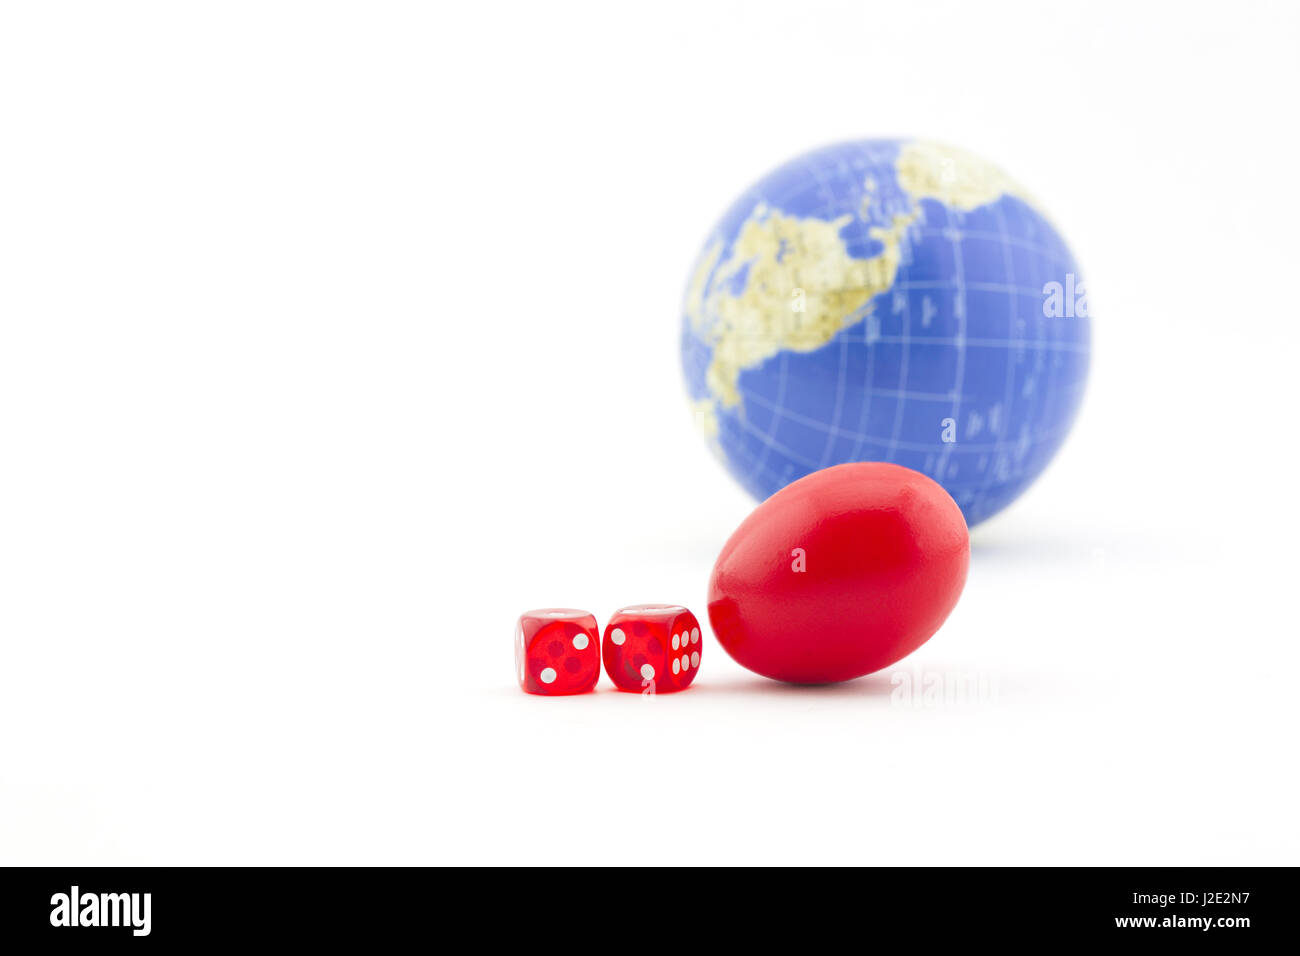 Dice and red nest egg with global background signify financial gamble and risks inherent in business, investment, - Stock Image